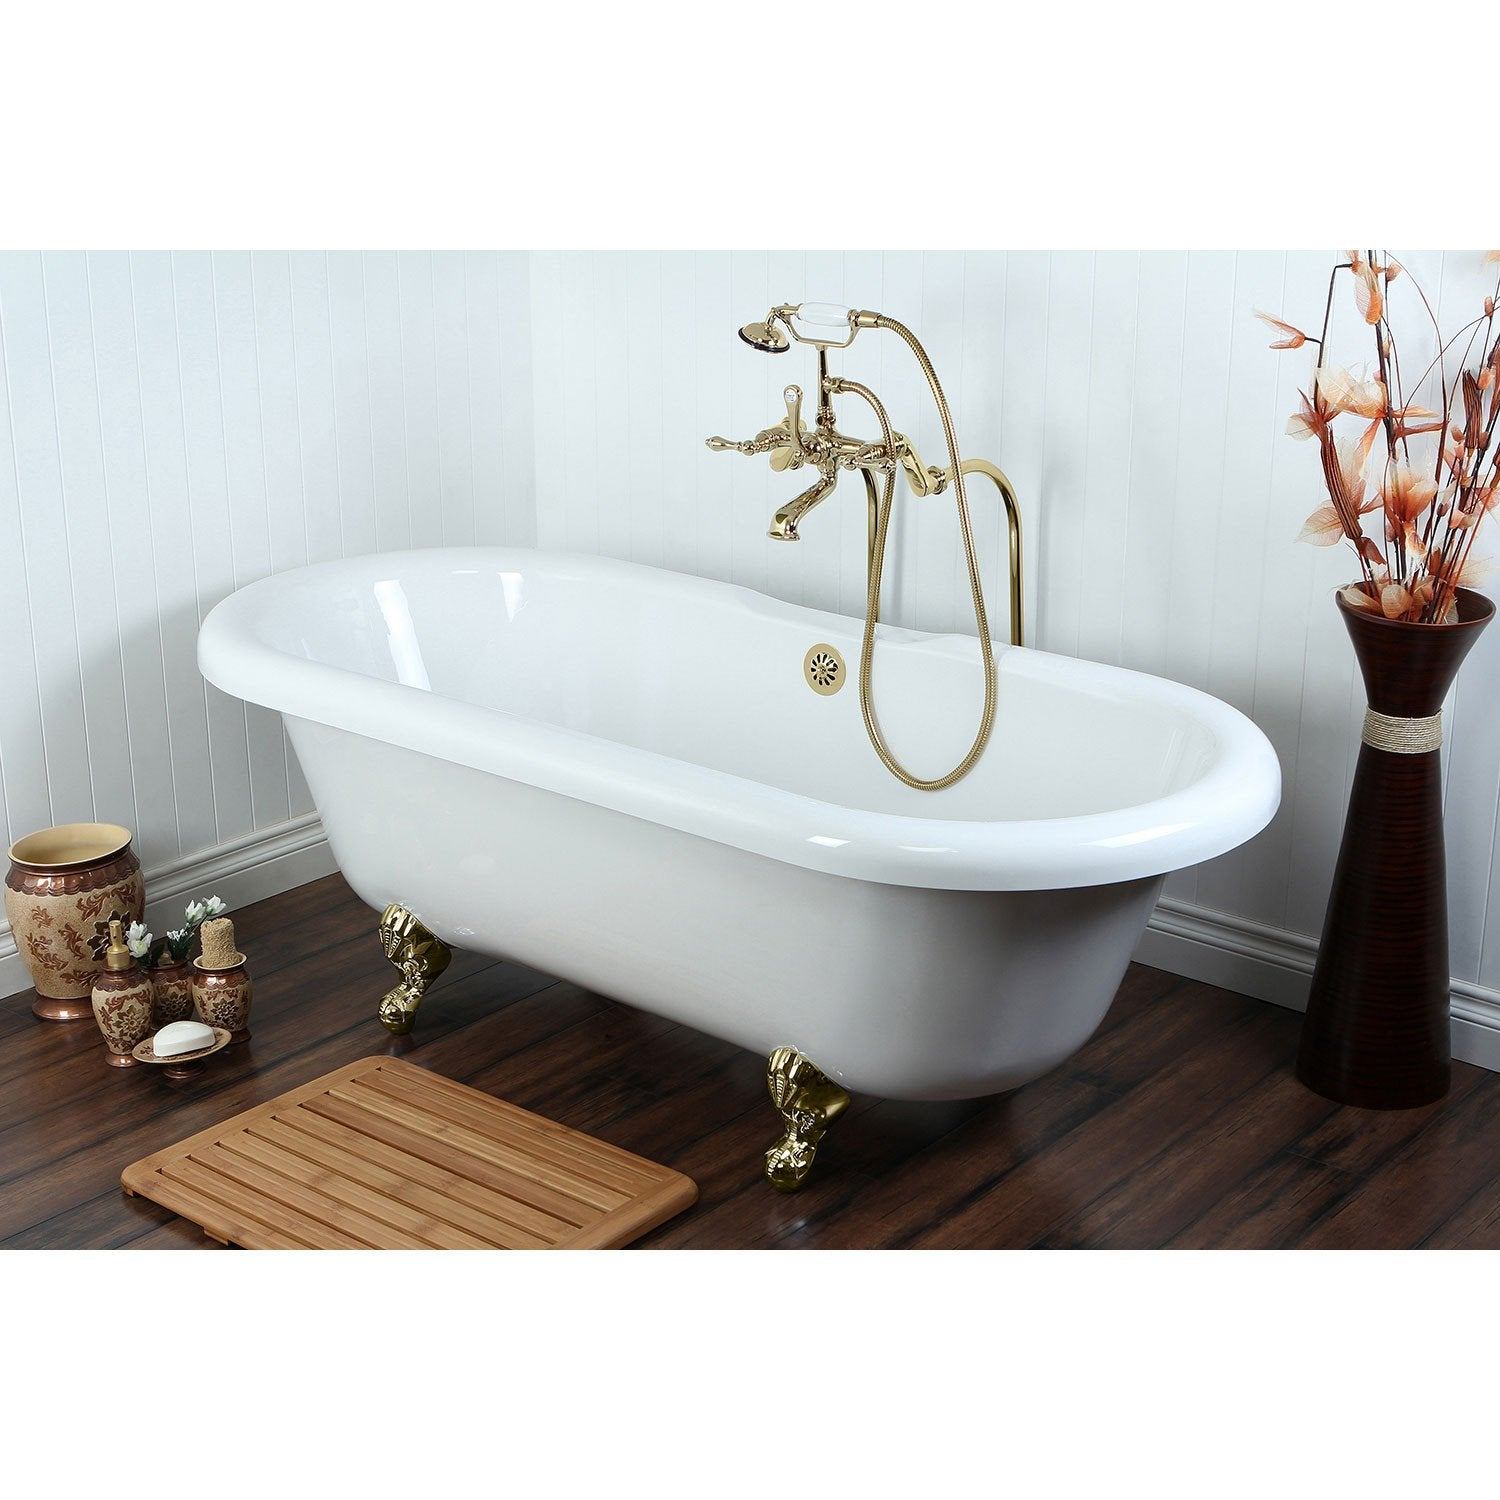 "67"" Clawfoot Tub w Freestanding Polished Brass Tub Filler Hardware Package CTP54"